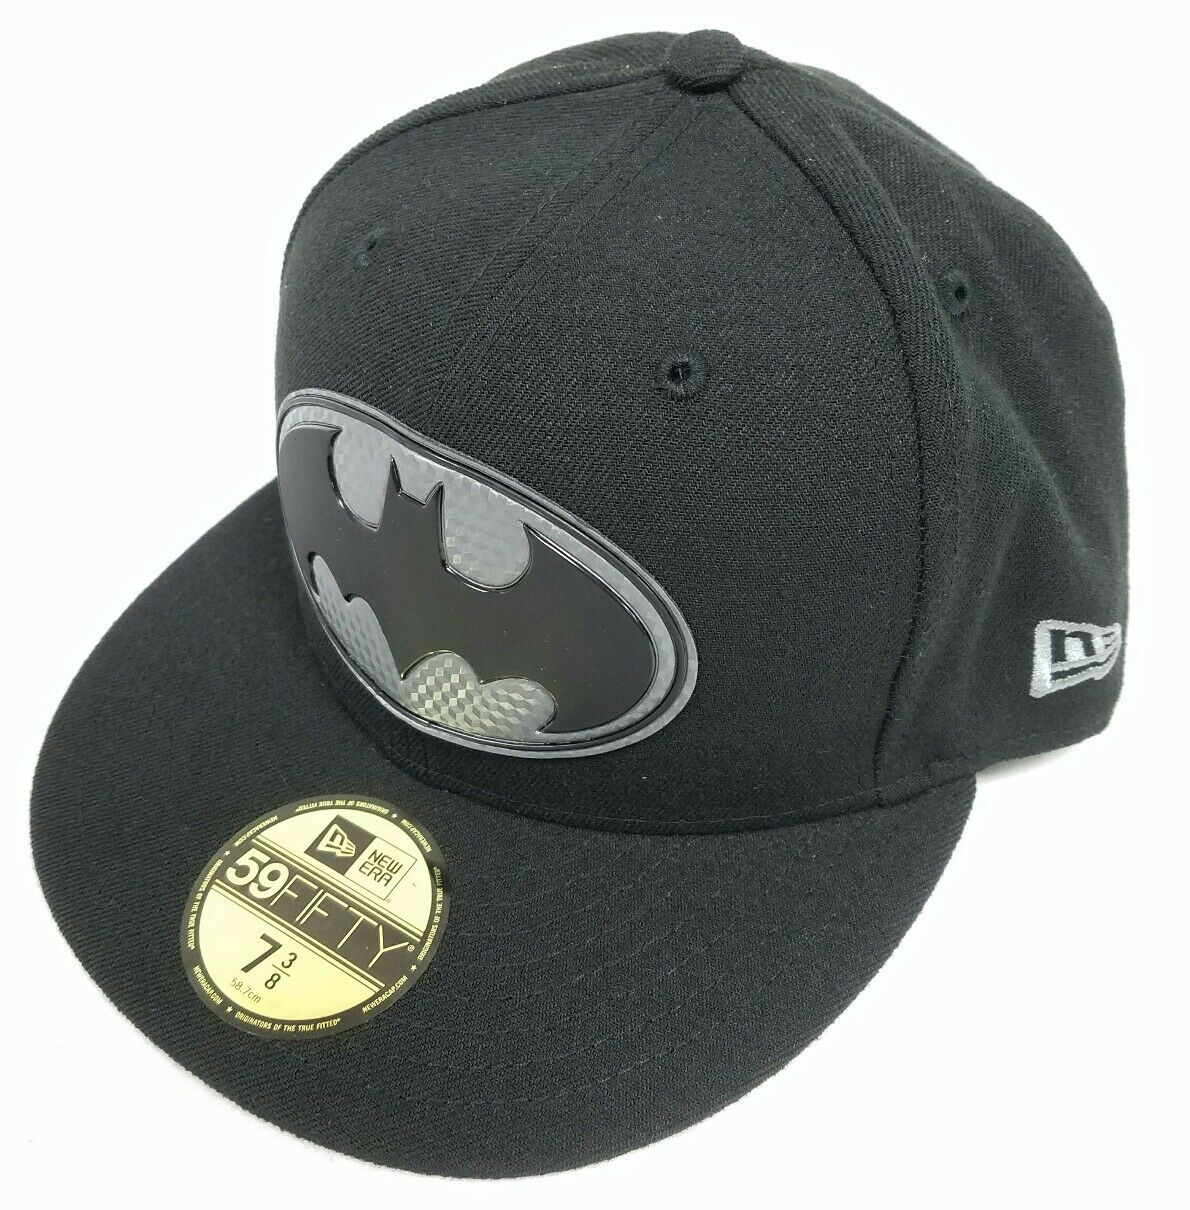 Batman Logo Hexshine Black 7 3/8 Fitted Comics Cap DC Comics Fitted New Era 59Fifty New Unworn 98a5b6